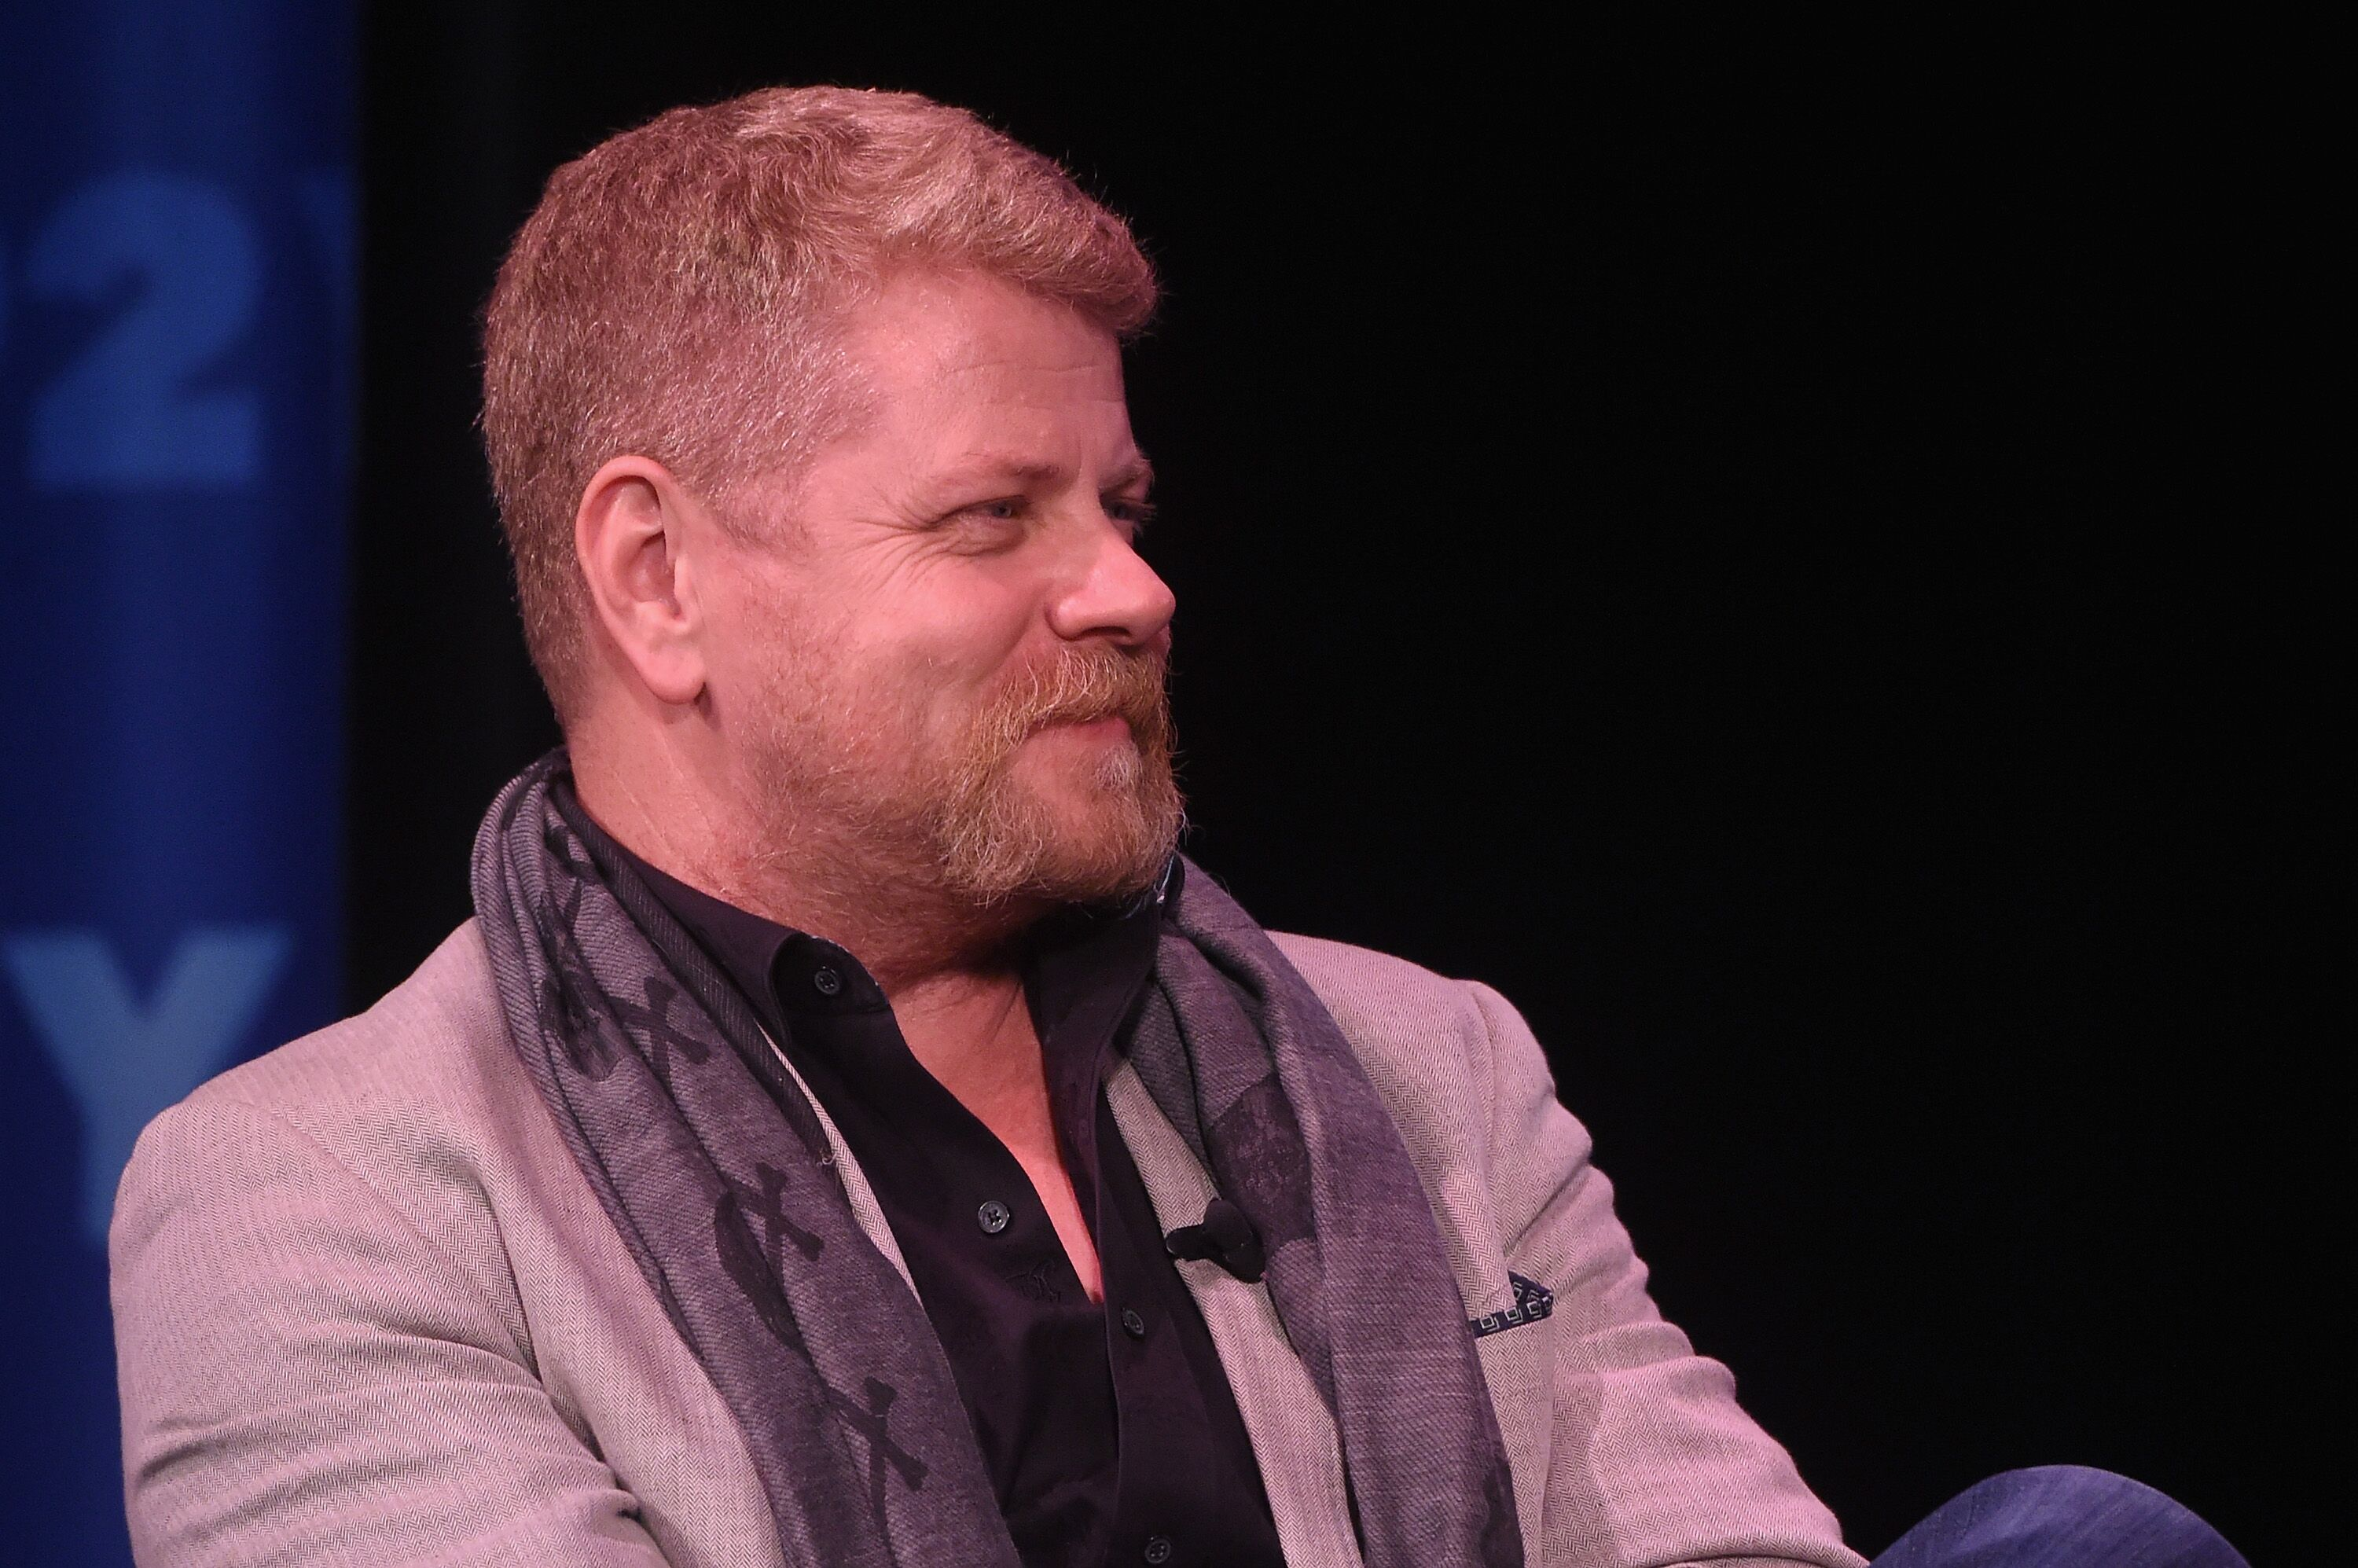 The Walking Dead filming schedule forces Michael Cudlitz convention cancellation